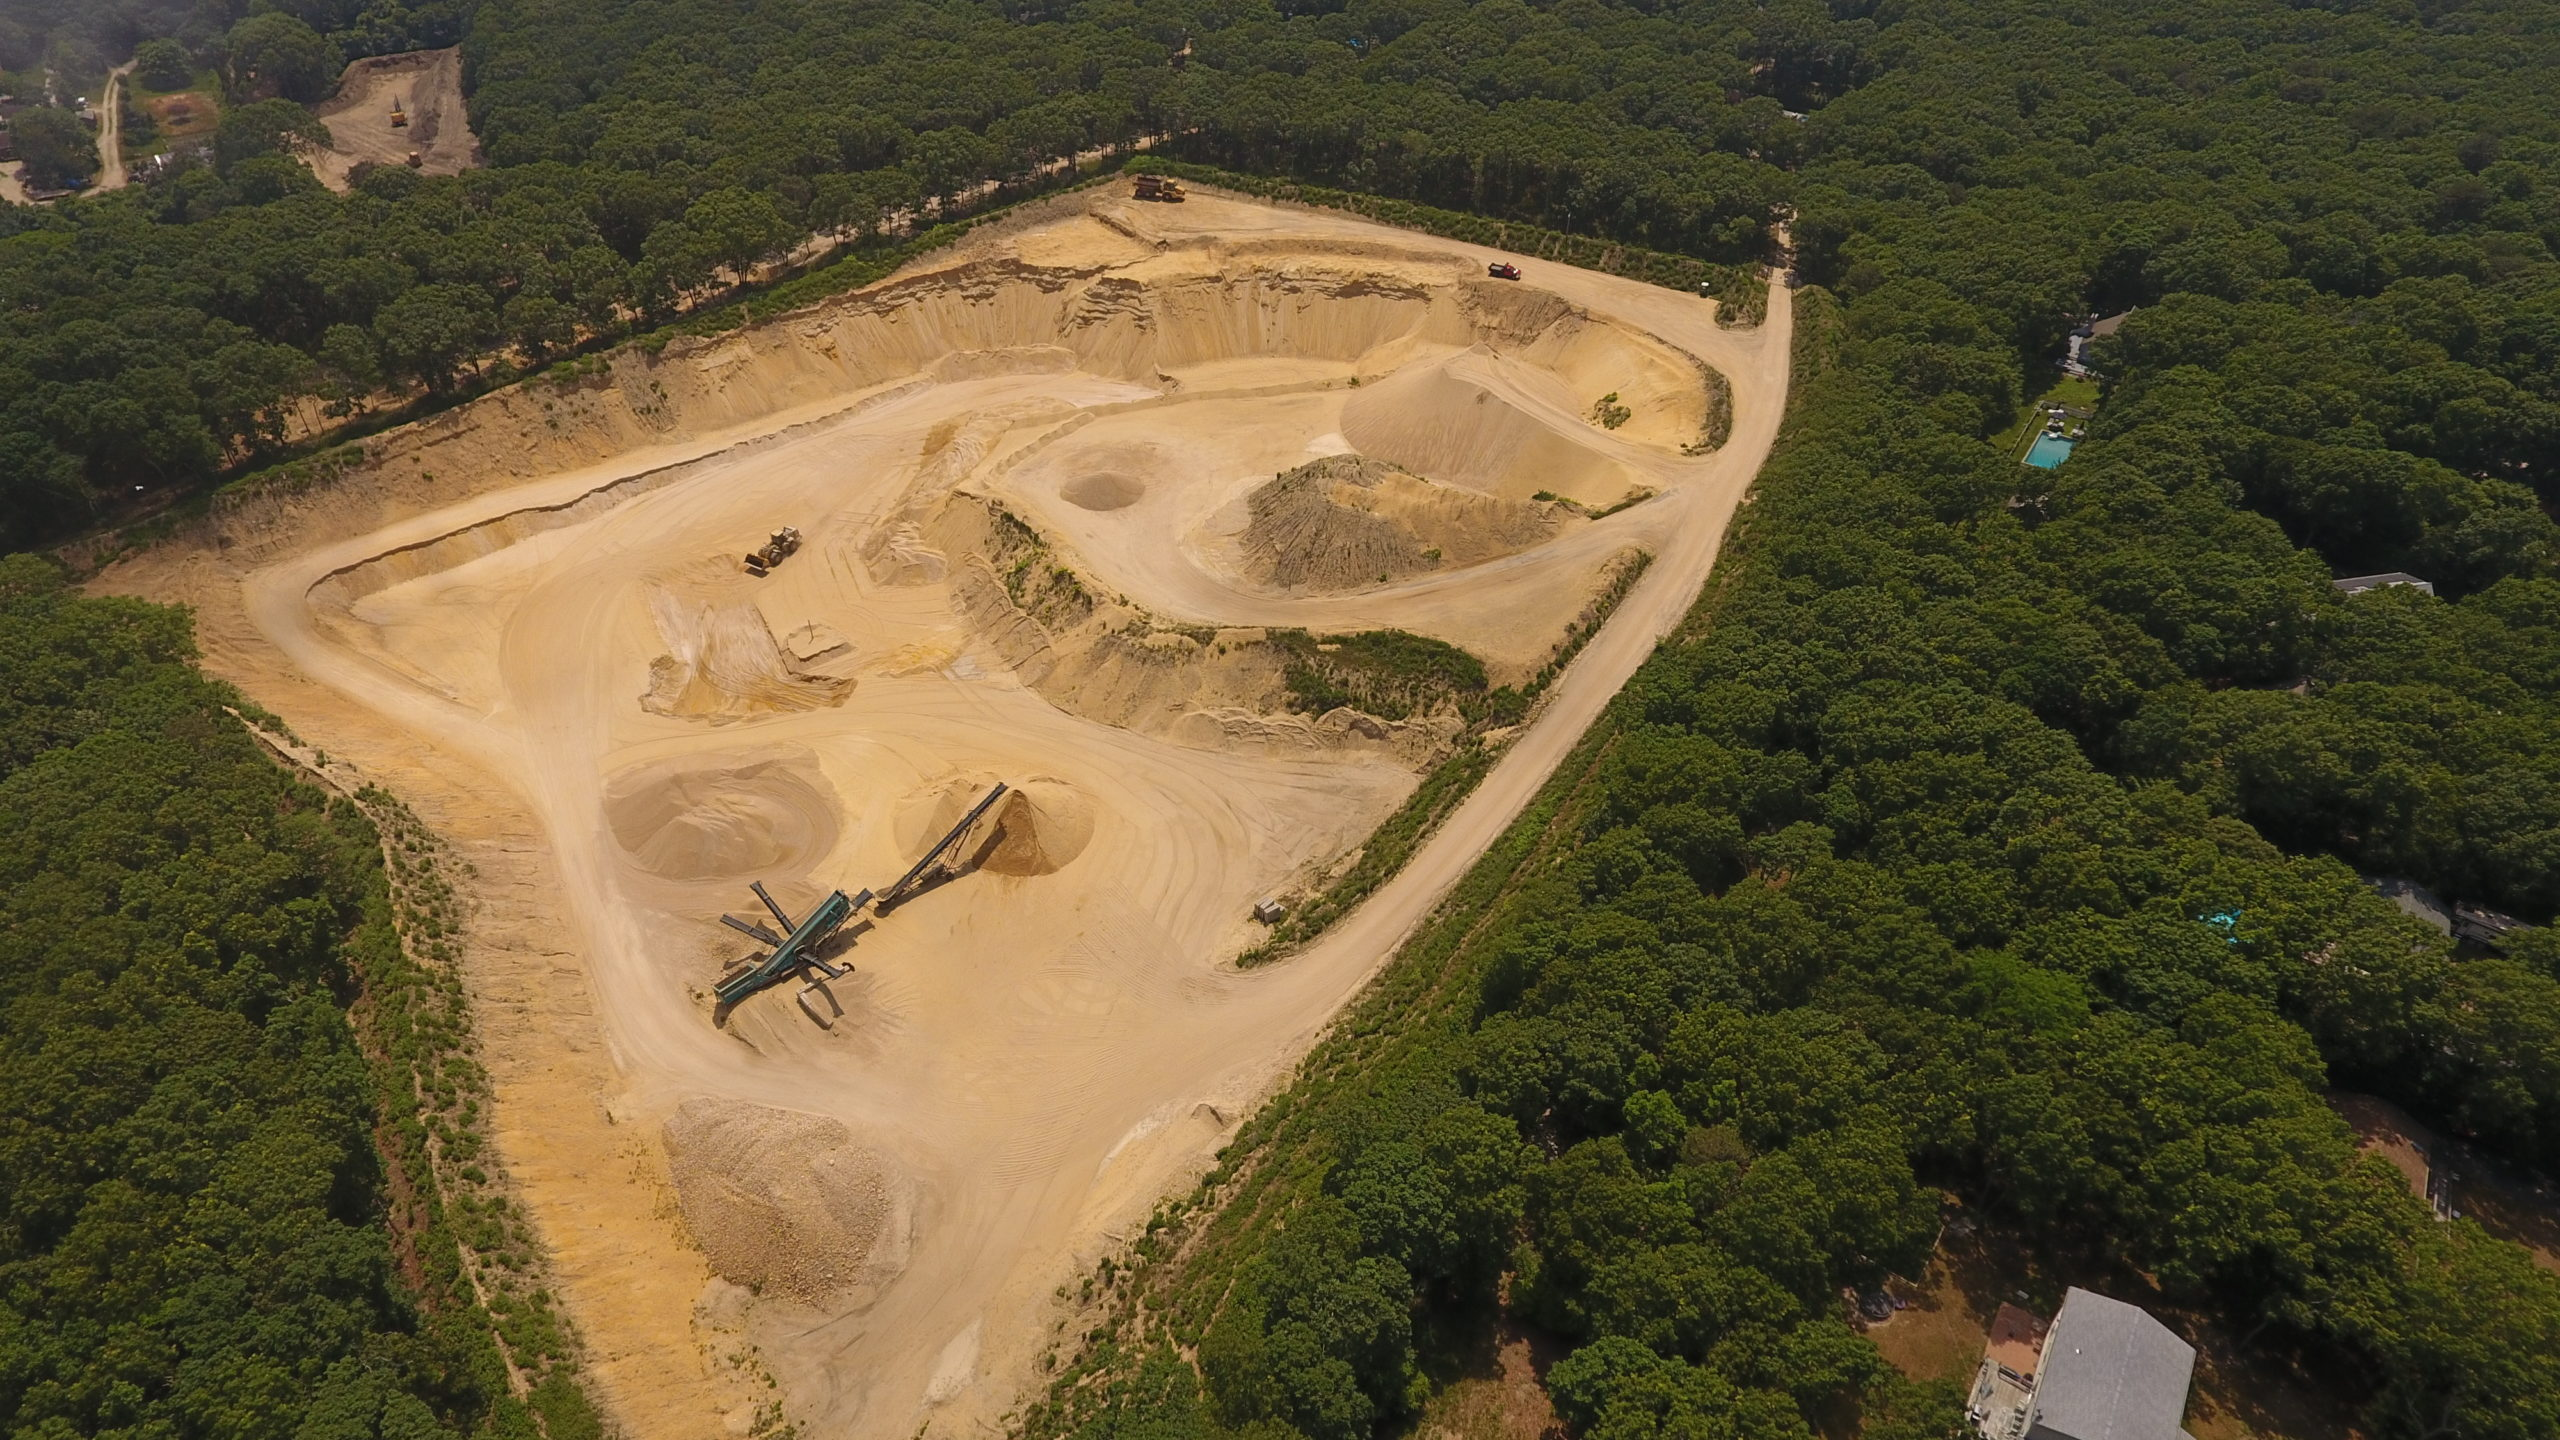 The sand pit on Middle Highway in East Hampton known as Sand Highway. A state judge this week ruled that allowing the mine to dig down 150 feet, creating a 6-acre lake of exposed groundwater, does not constitute an expansion of the mine. But another state court ruled in May that a similar proposal in Noyac was, in fact, an illegal expansion.